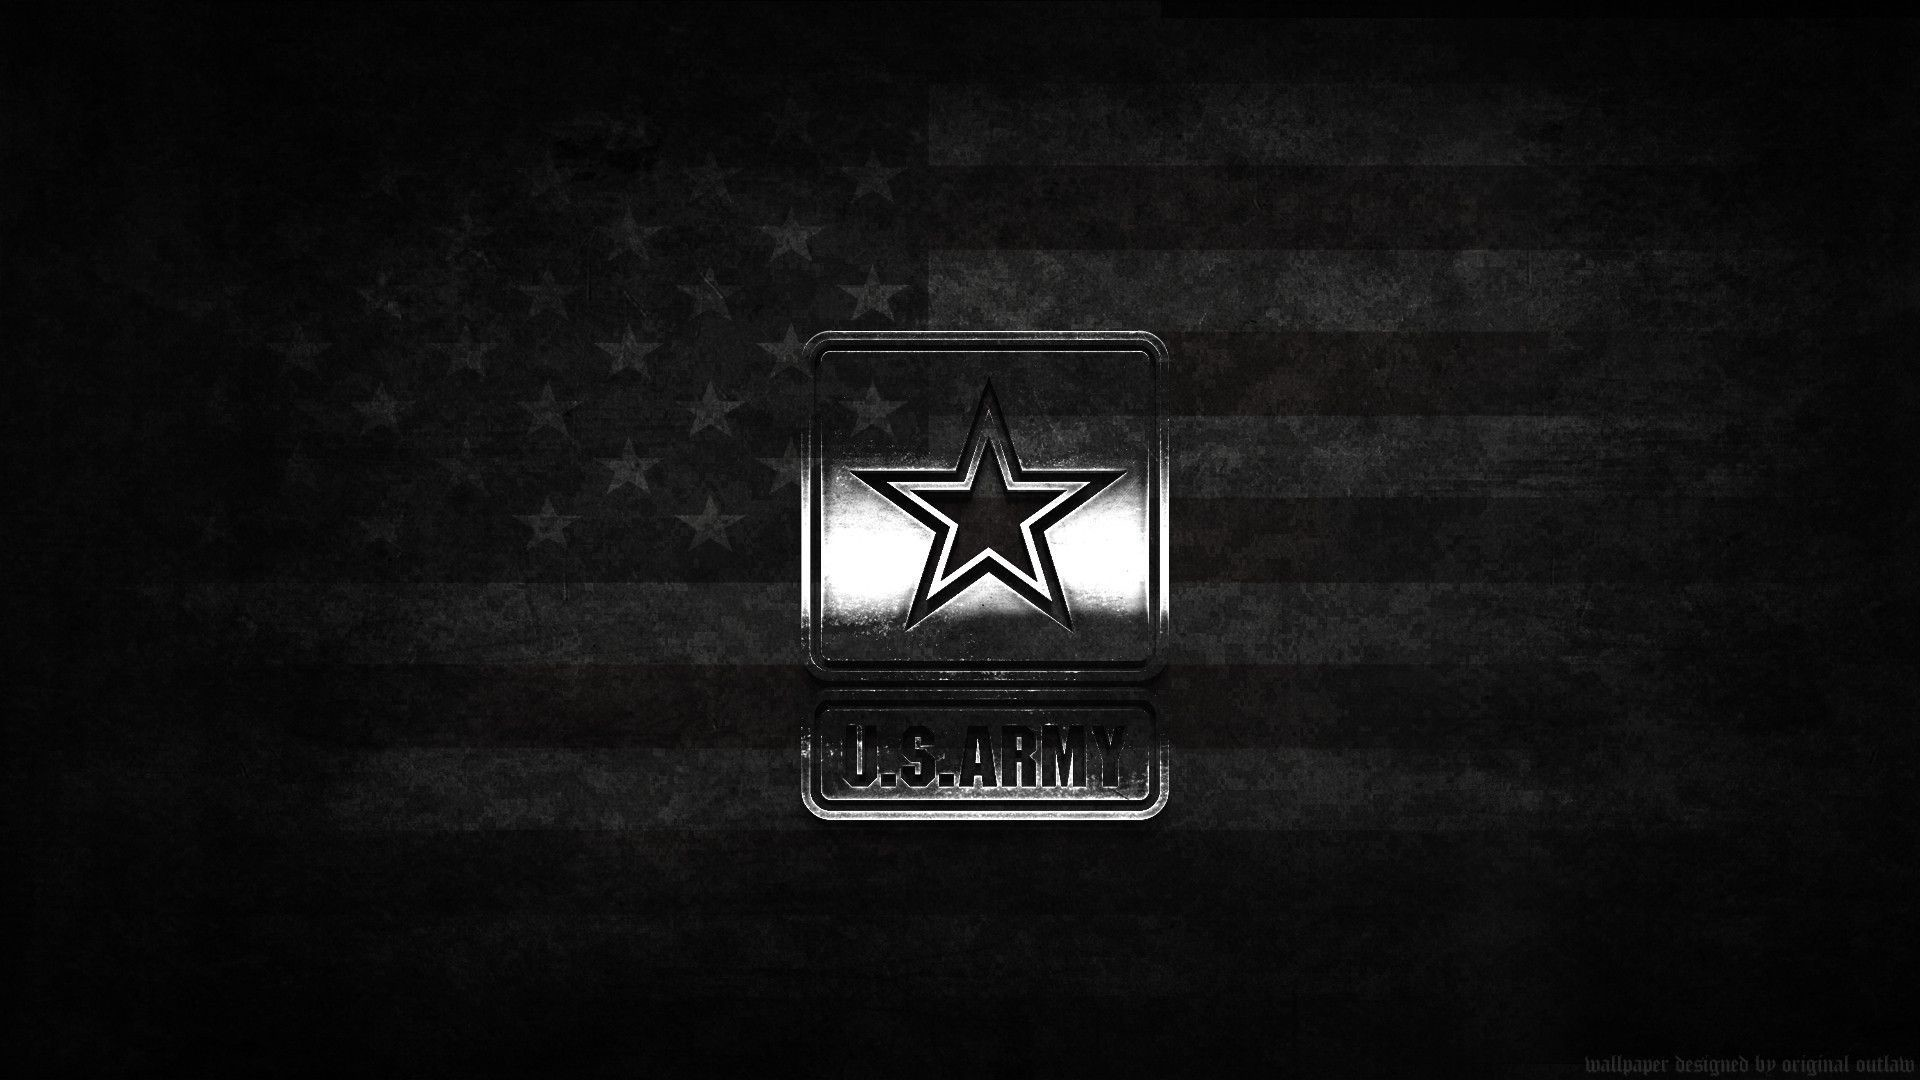 1920x1080 Wallpapers Of Army Group 1680×1050 US Army Special Forces Wallpapers (32 Wallpapers) | Adorable Wallpapers | Desktop | Pinterest | Special forces ...